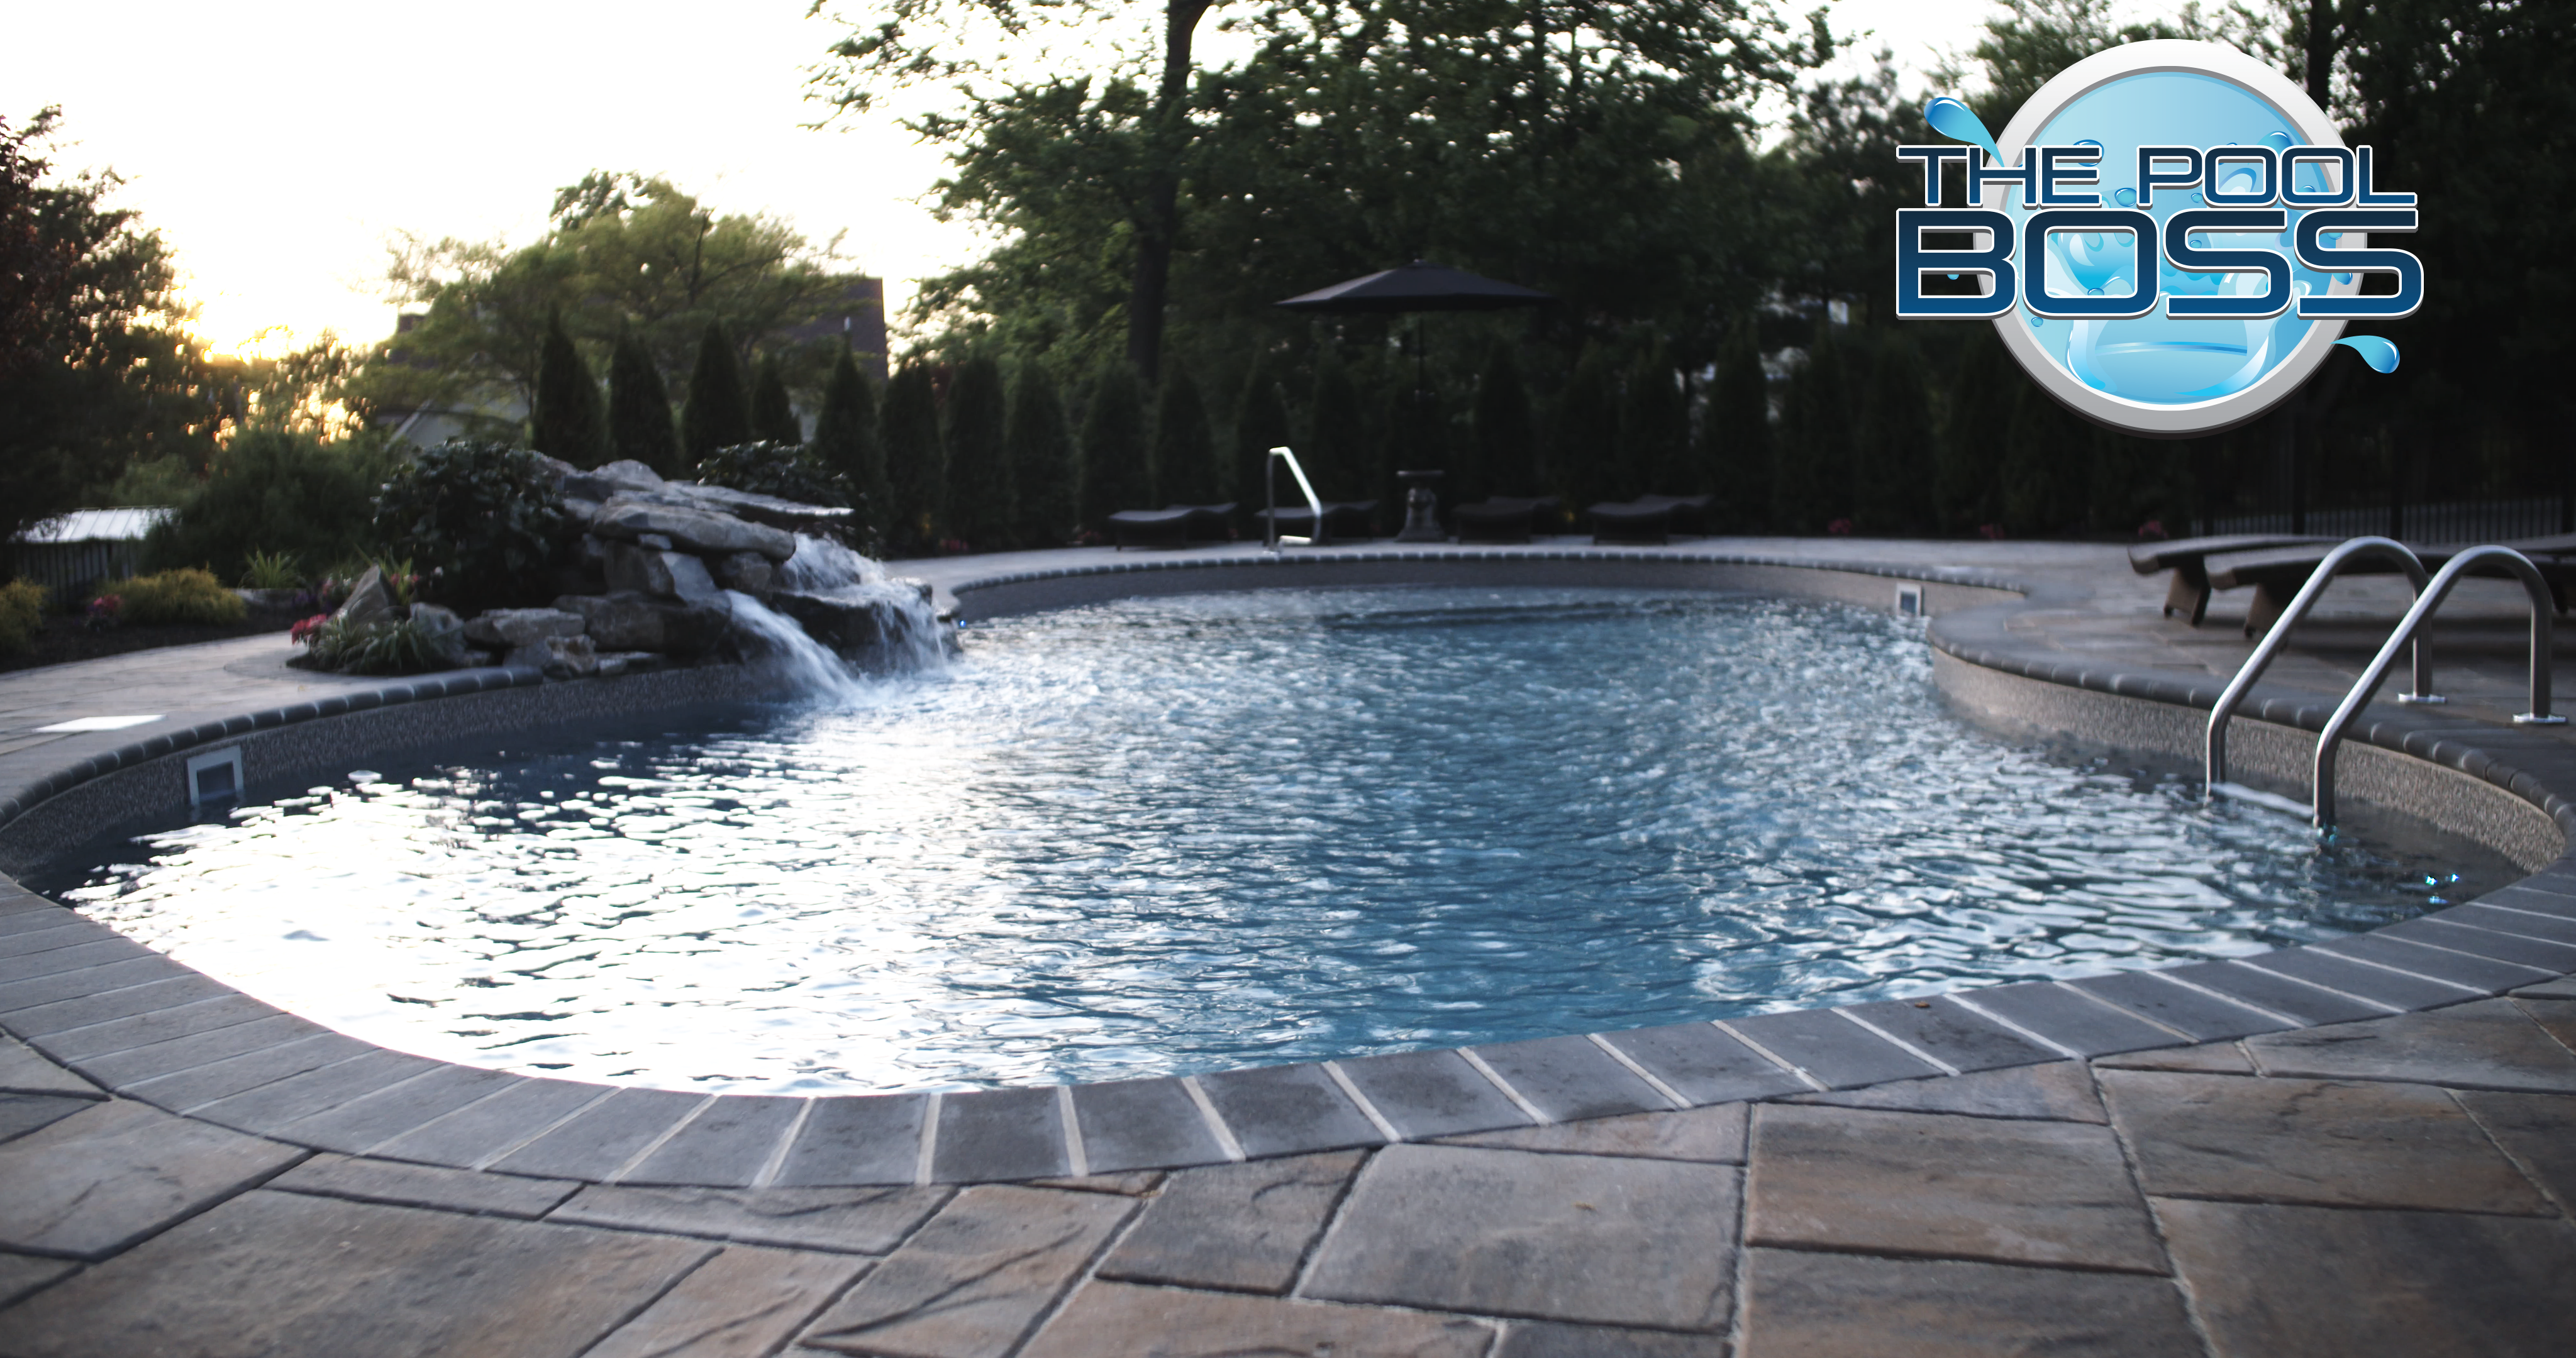 North Caldwell Nj The Pool Boss Nj 39 S 1 In Ground Swimming Pool Company